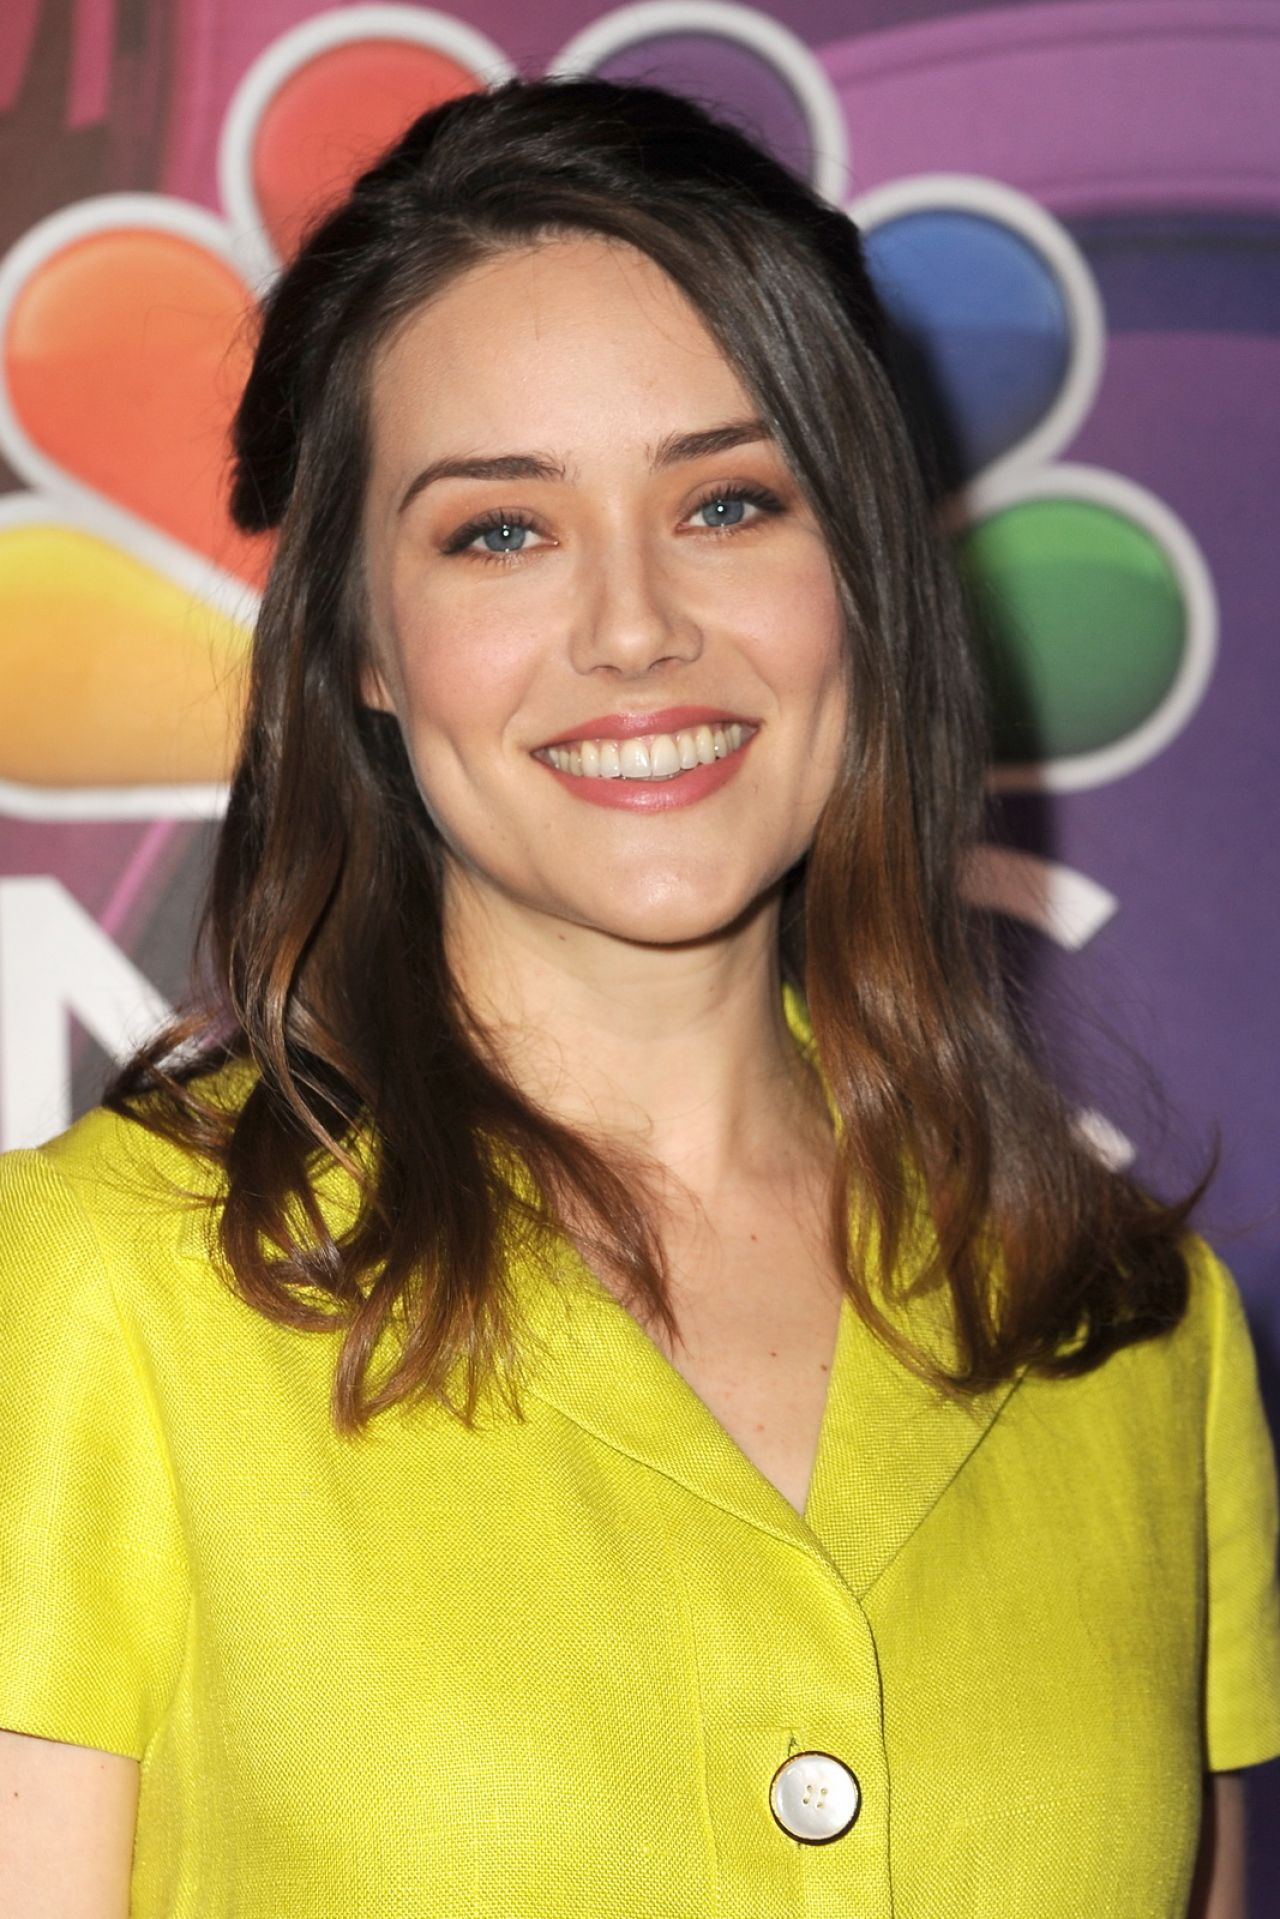 Megan Boone Nbc Mid Season Press Day In New York 03 08 2018